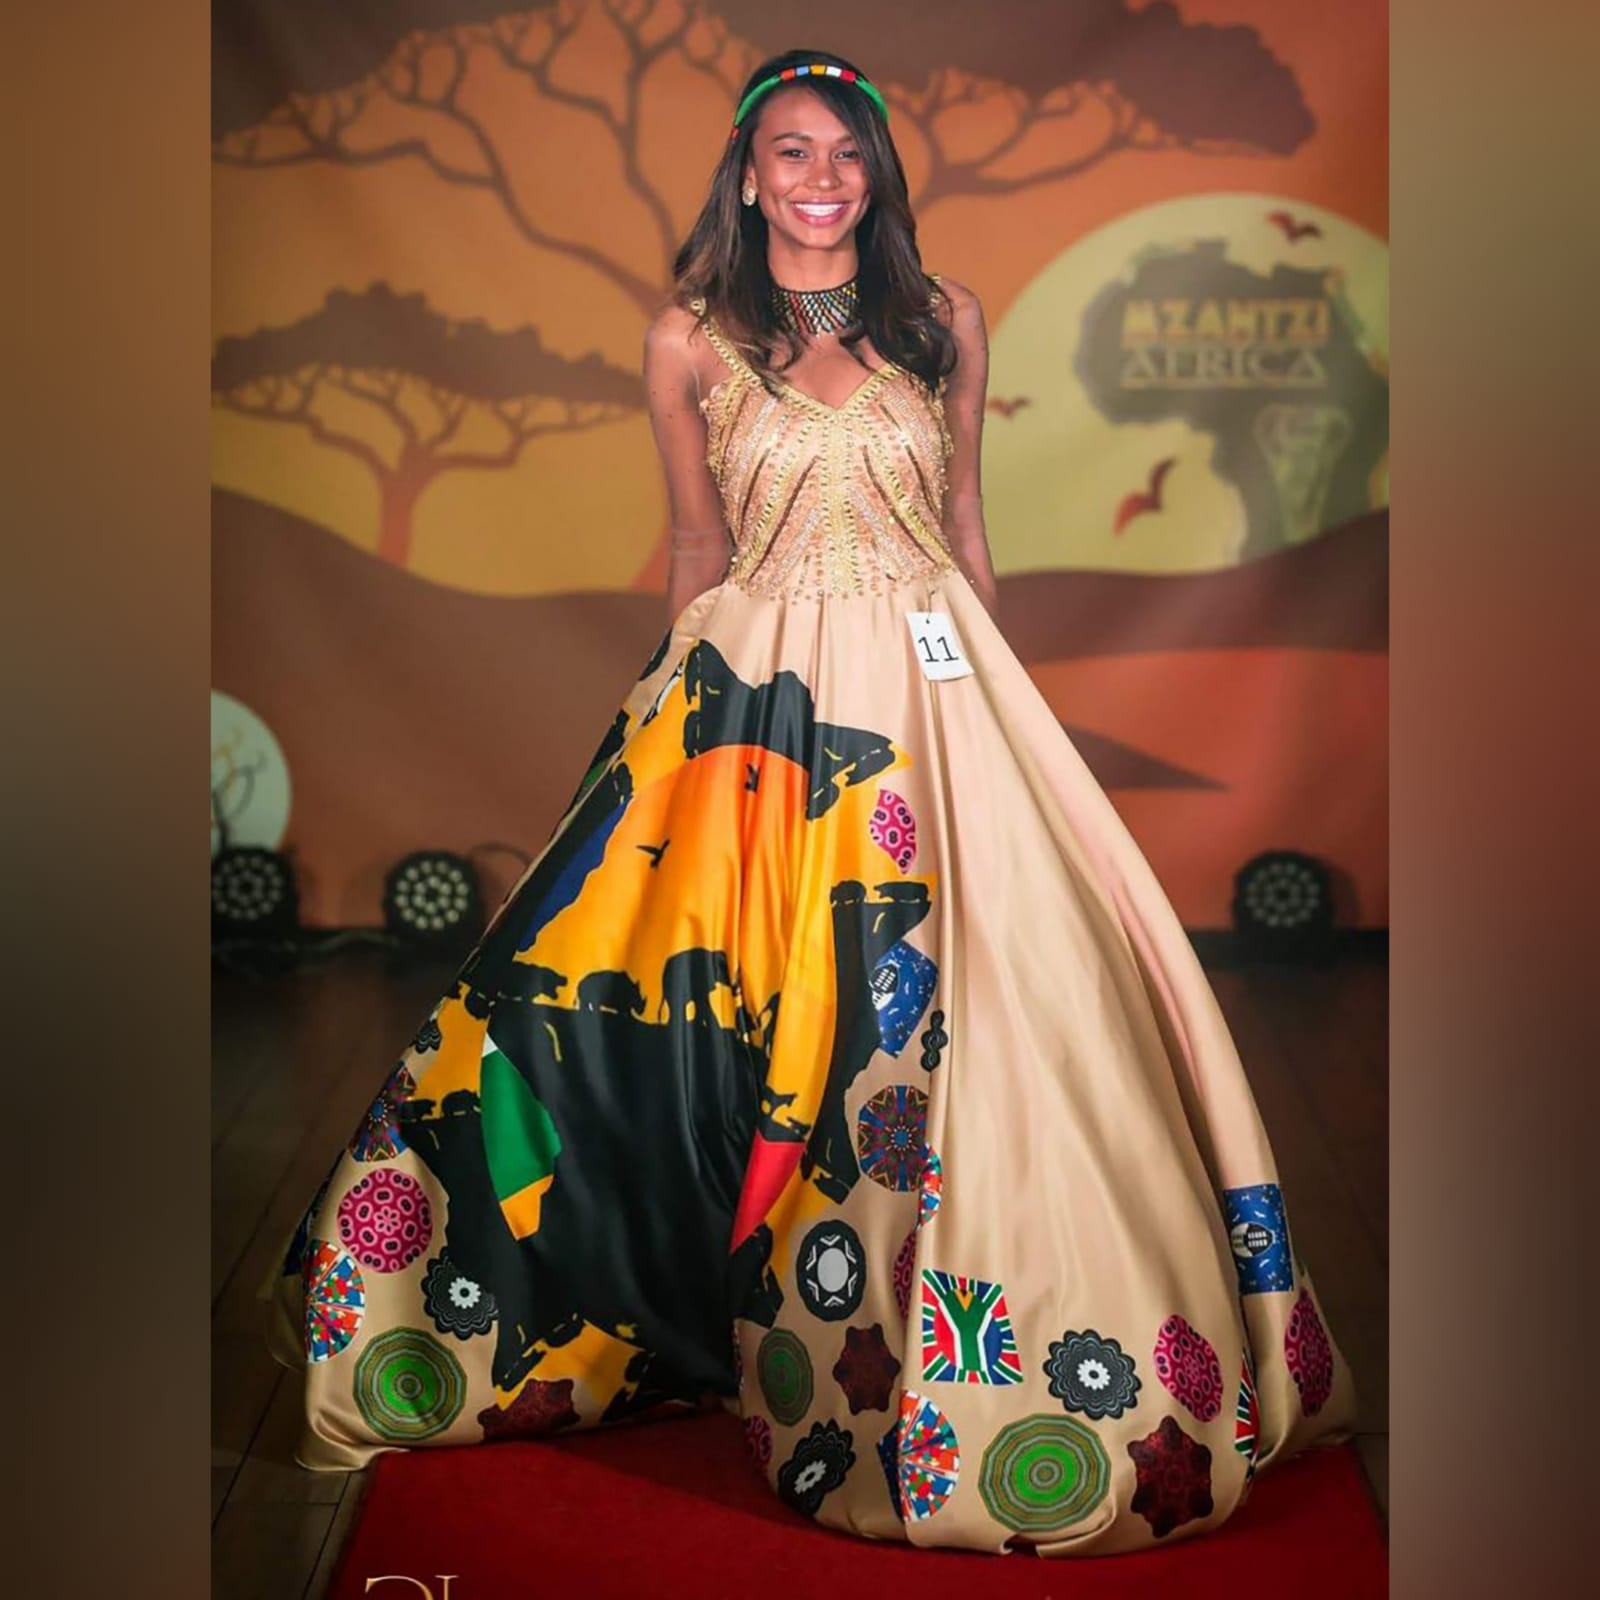 Gold ball gown for beauty pageant 5 gold ball gown for beauty pageant, bodice detailed in gold beadwork with sheer long sleeves, with a v open back. With traditional kaleidoscope print